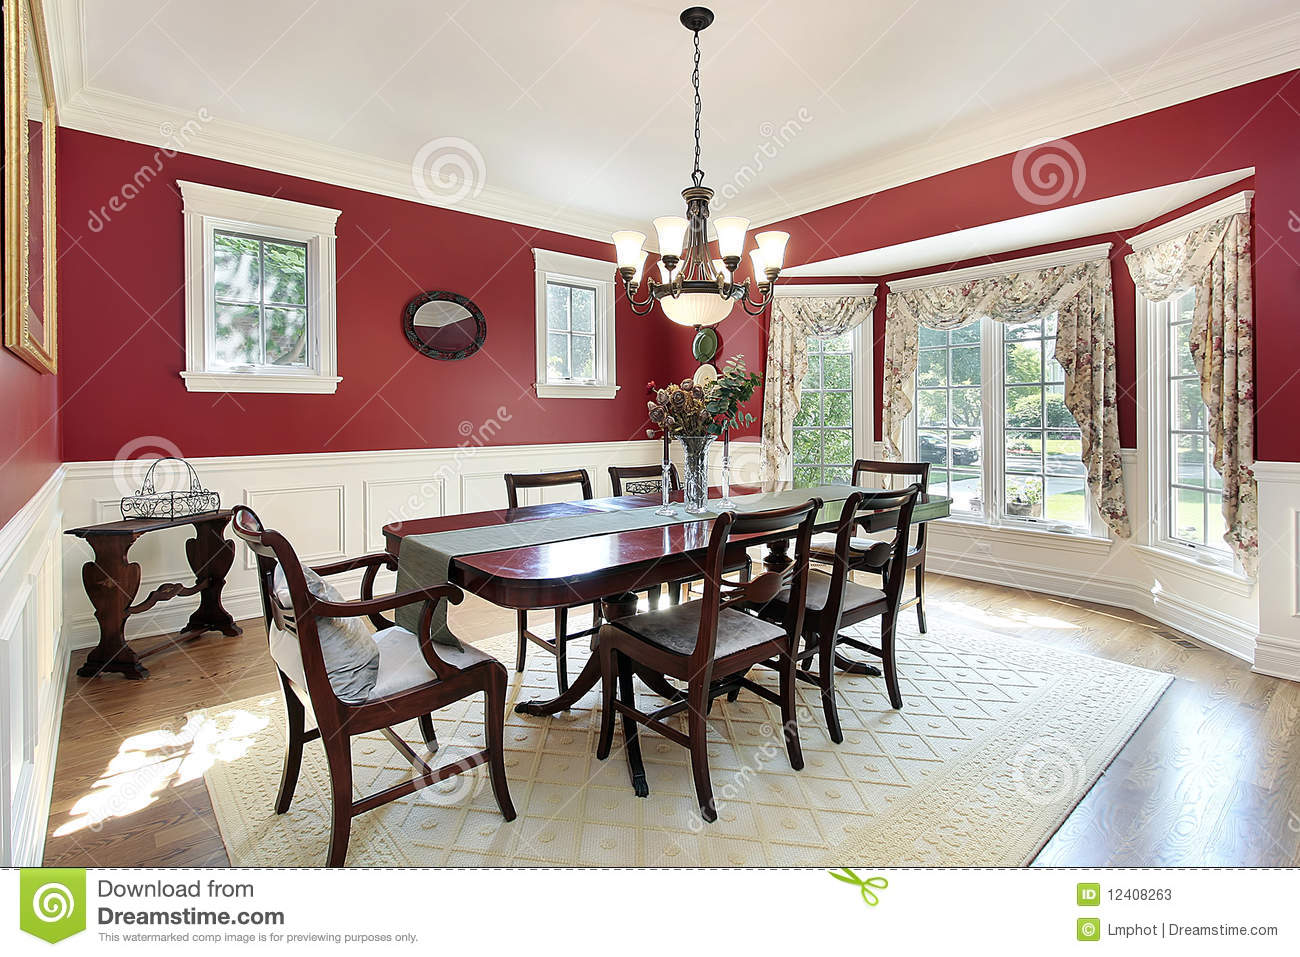 Dining room with red walls stock image image of luxury for Dining room ideas with red walls